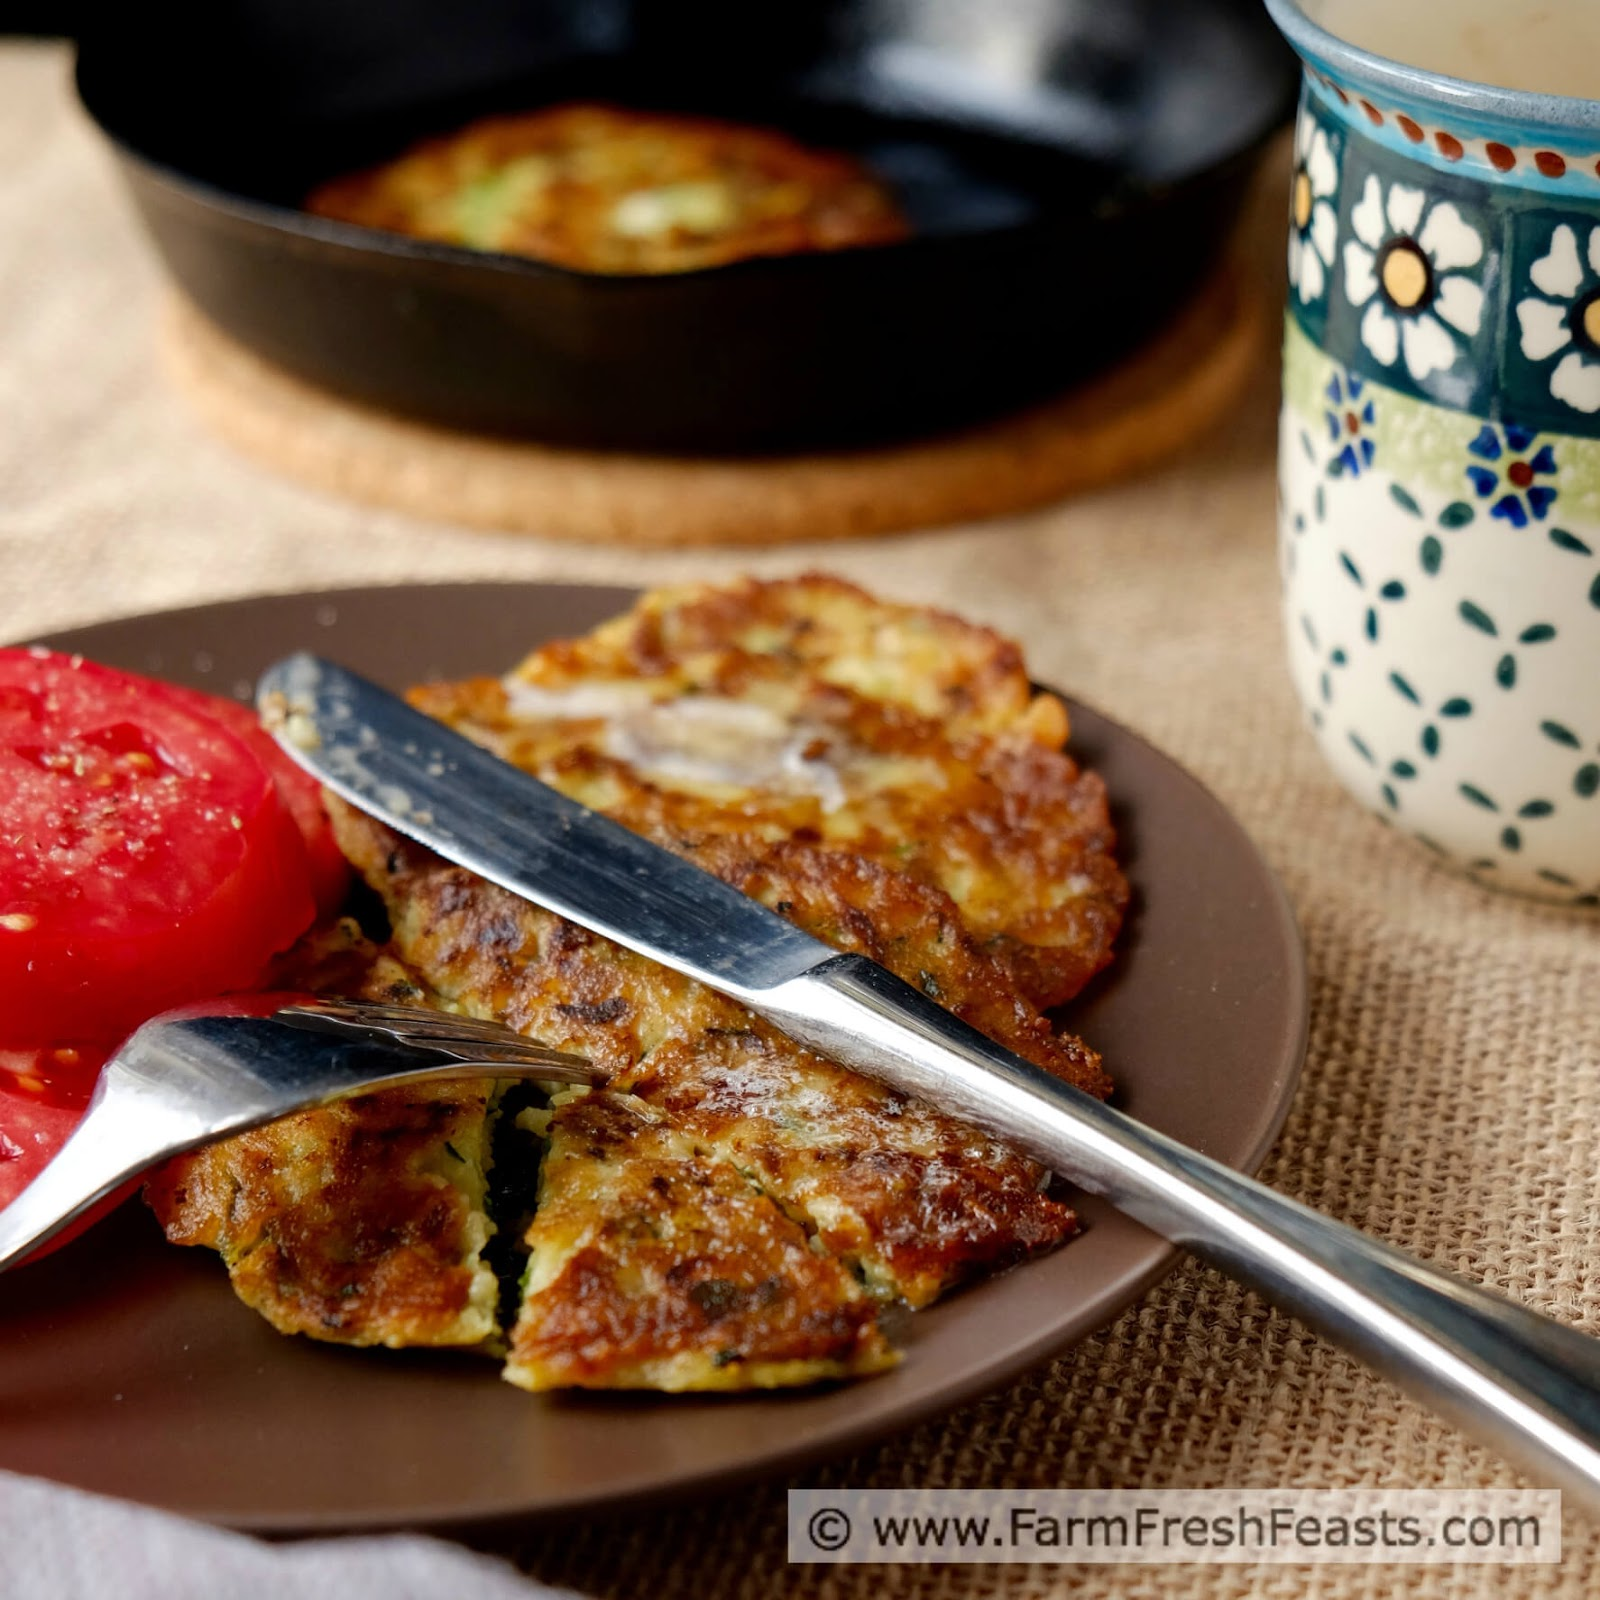 Farm Fresh Feasts Zucchini Pancakes for Breakfast Lunch or Dinner